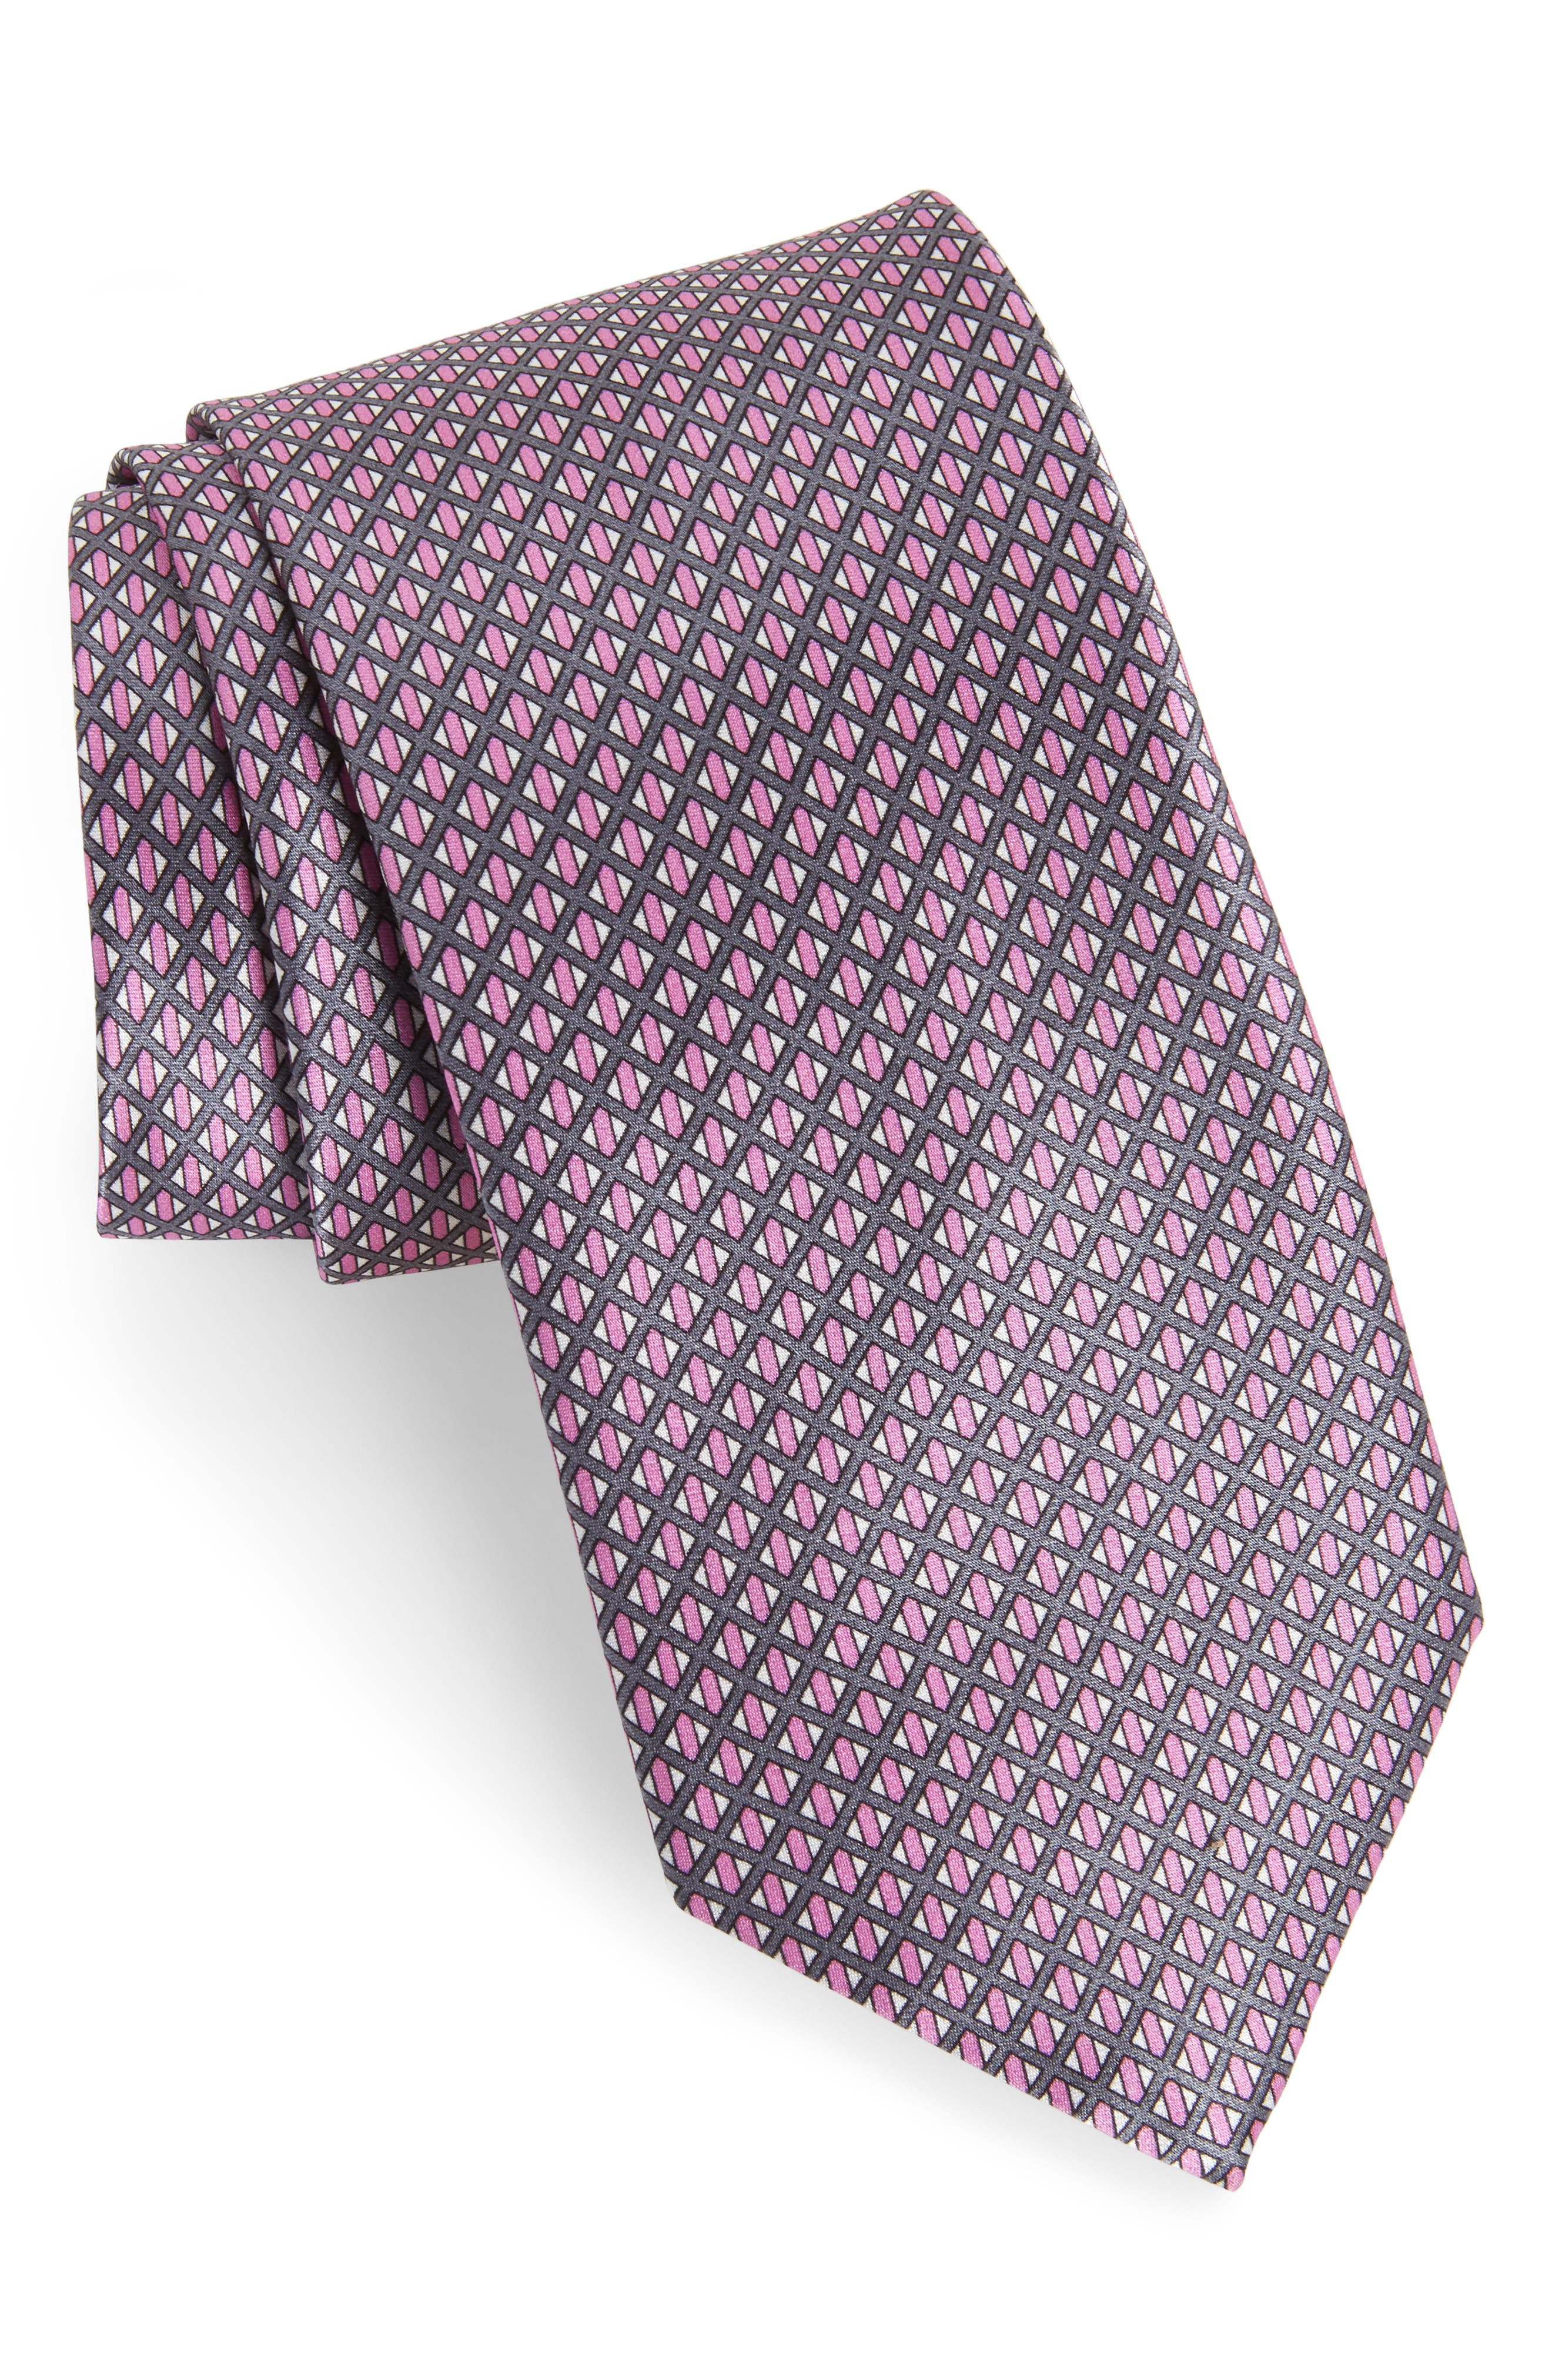 Neat Geometric Silk Tie,                             Main thumbnail 1, color,                             Violet/ Grey